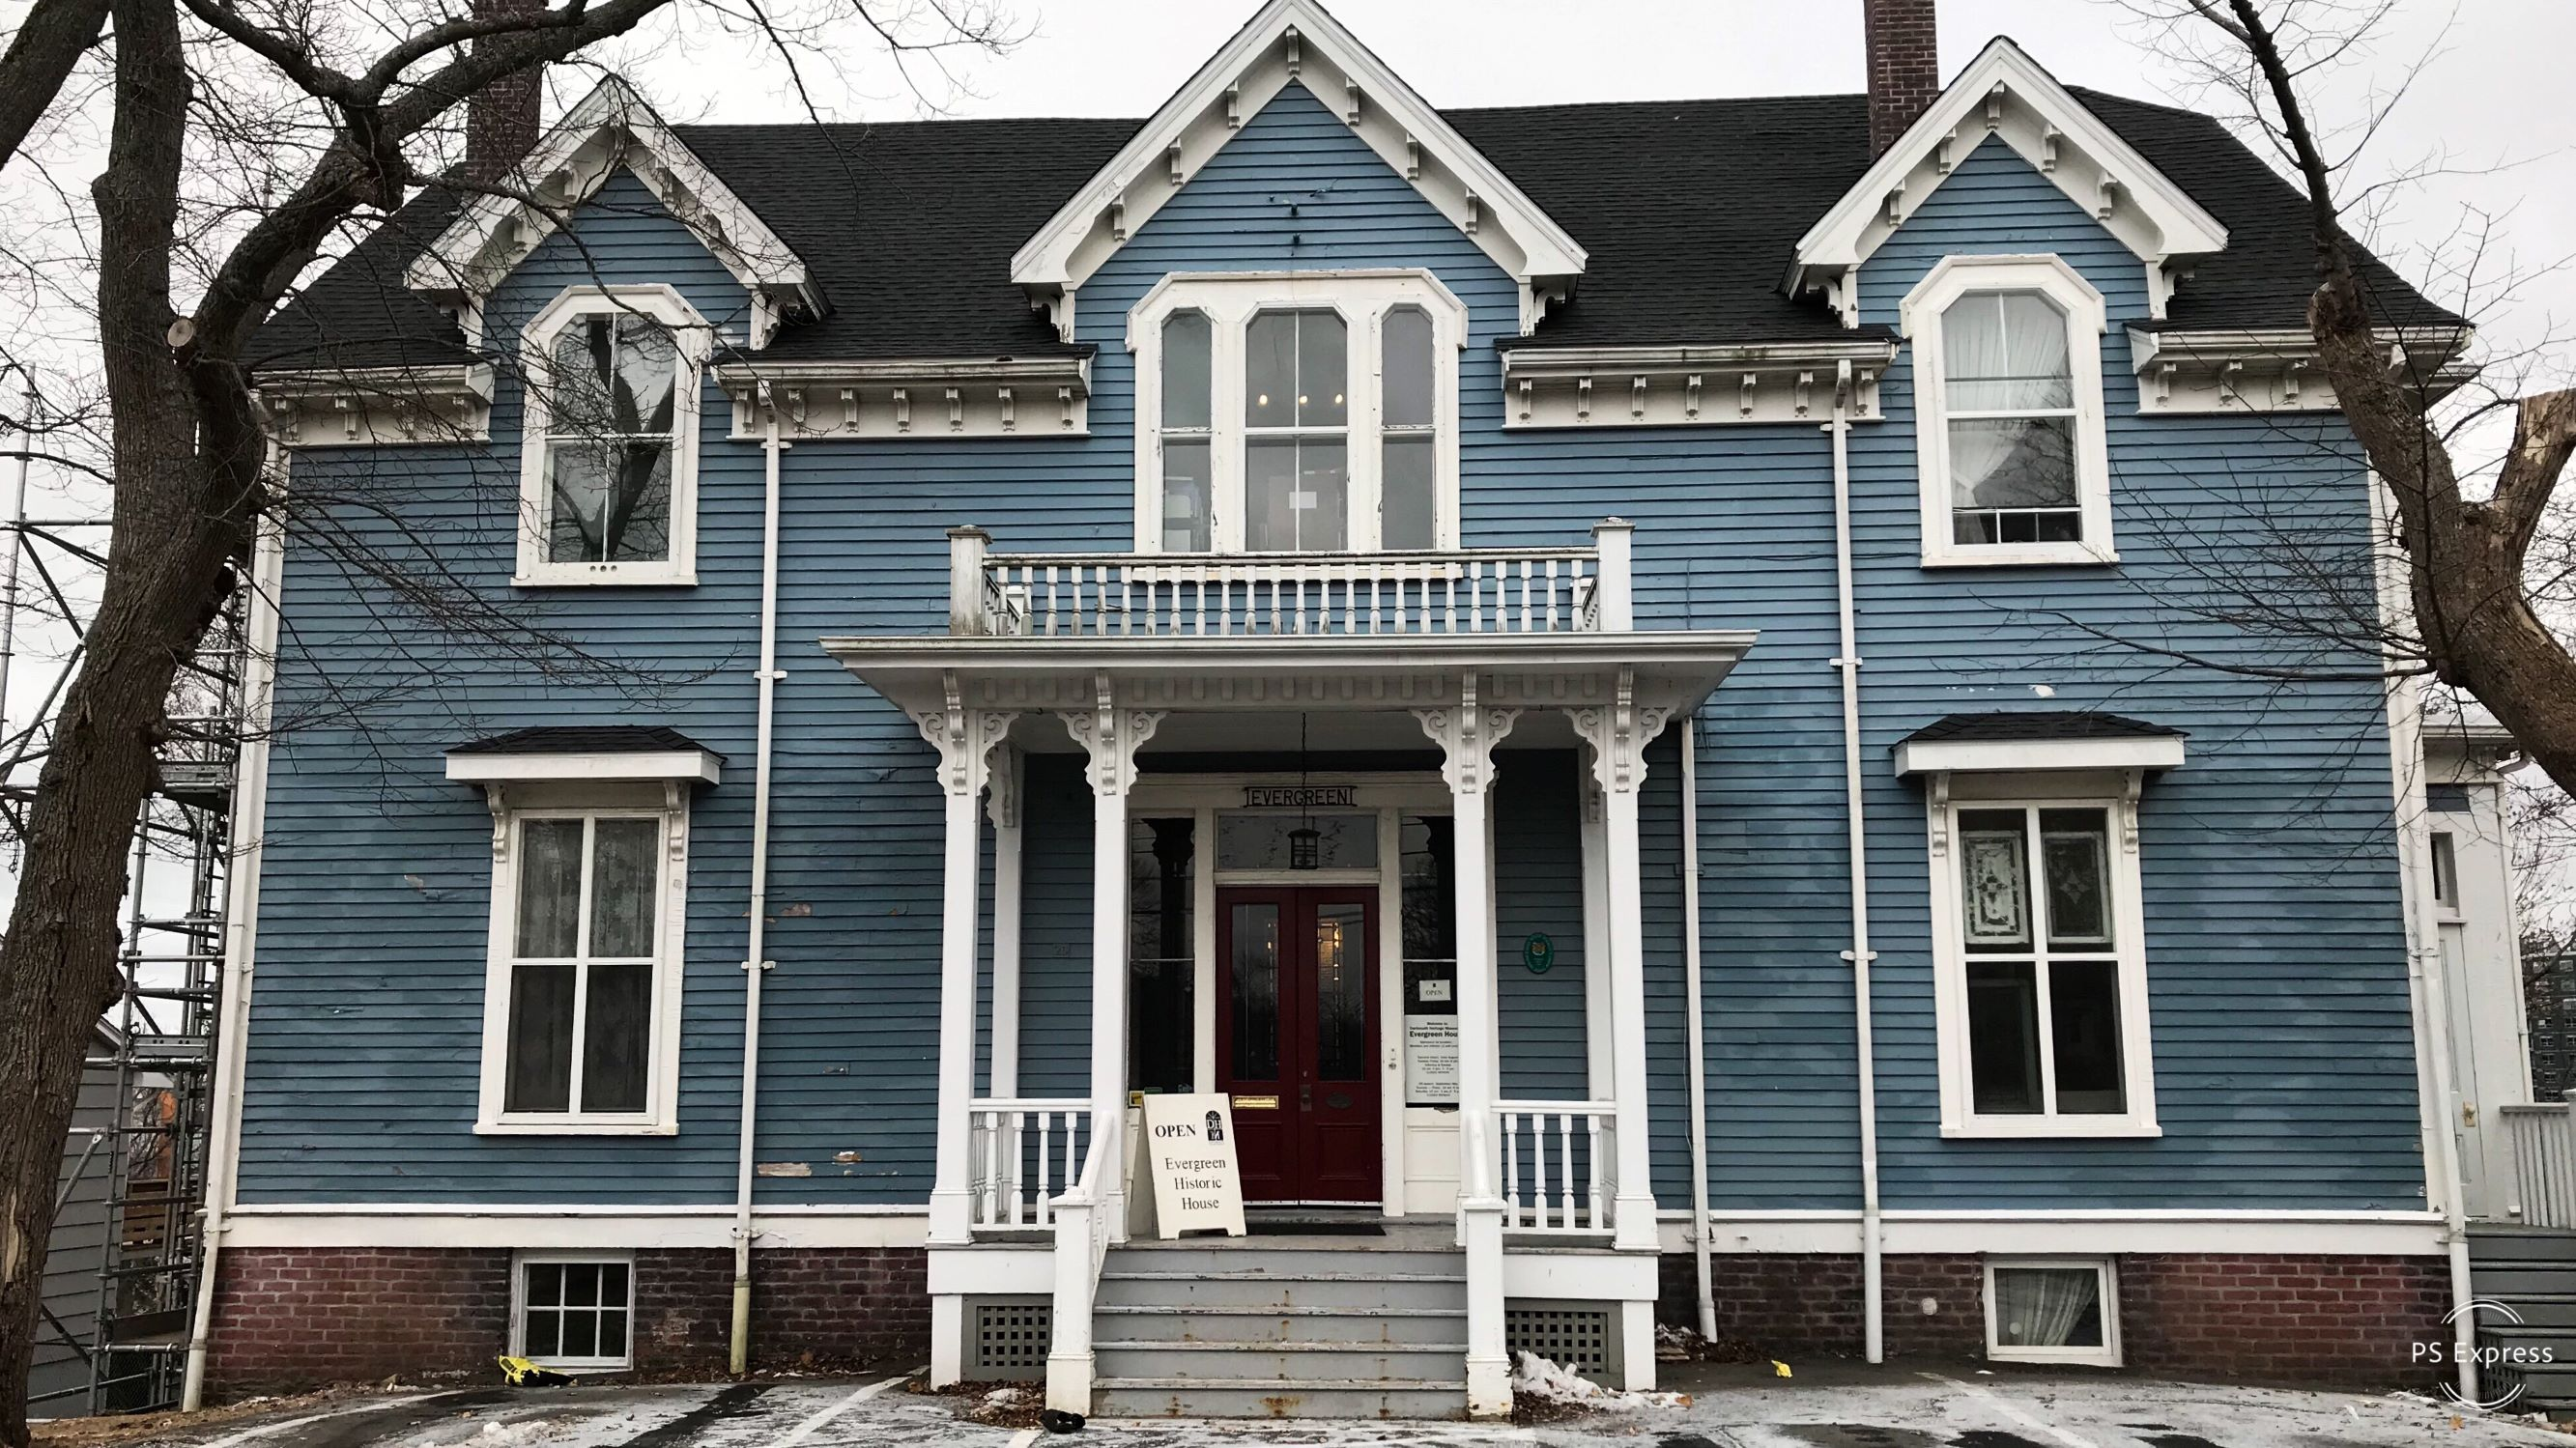 Built in 1867, Evergreen House in Dartmouth was named after the evergreen trees that once lined its driveway.